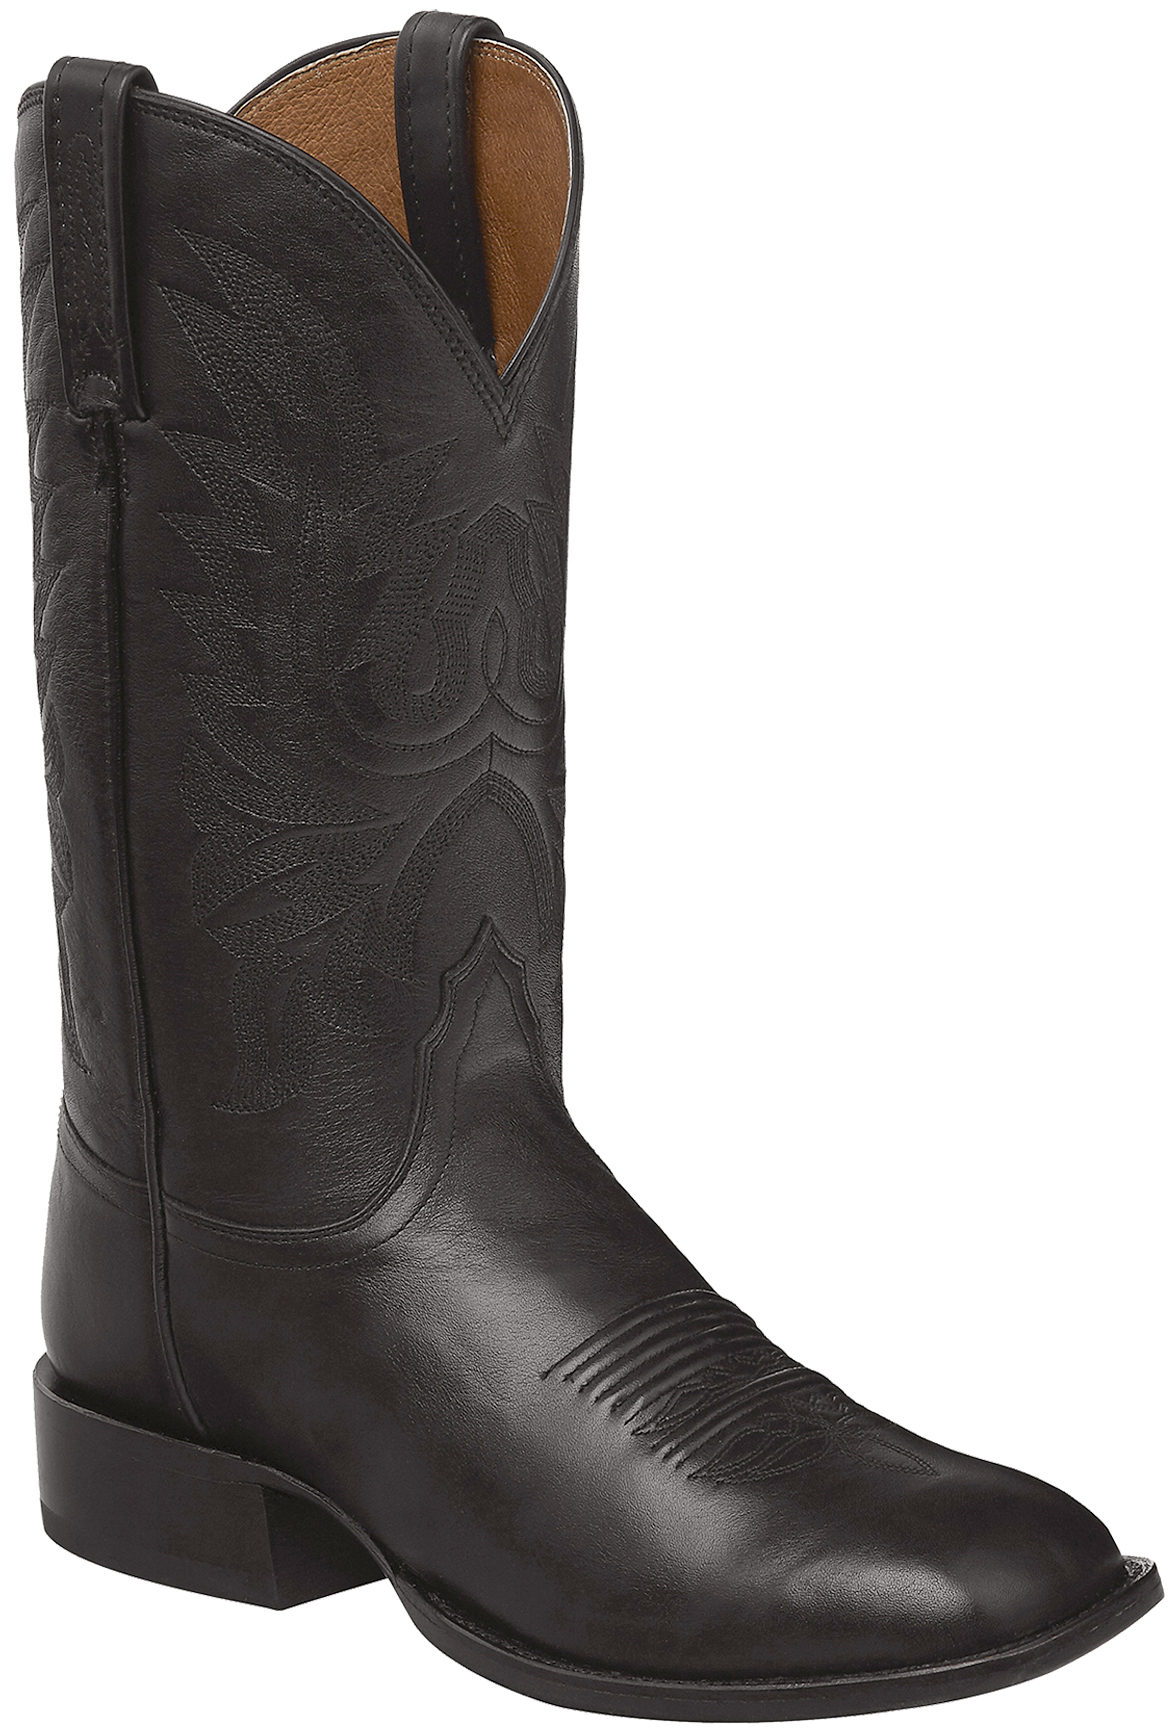 of my gainslifestyle boots best have on i artest feet comfortable fortable most cowboy ever thing comforter put womens com